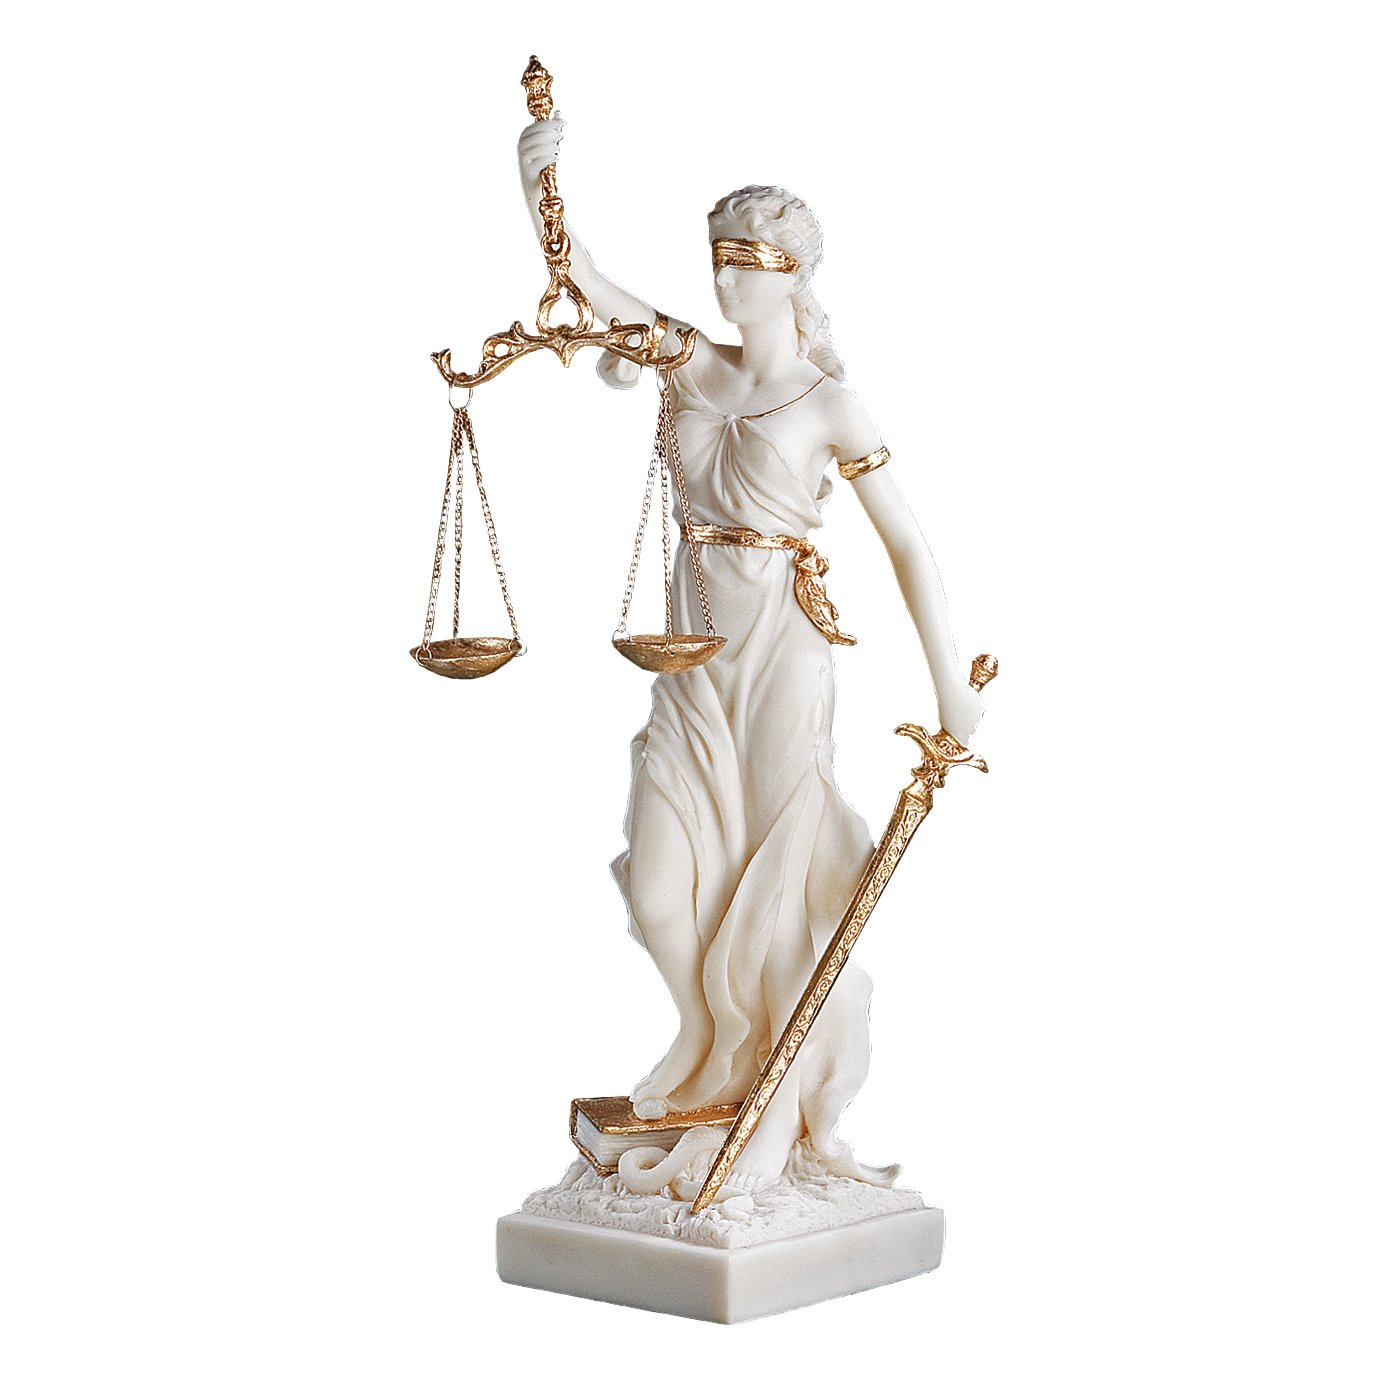 Buy design toscano bonded marble themis blind justice statue by buy design toscano bonded marble themis blind justice statue by design toscano online at low prices in india amazon fandeluxe PDF